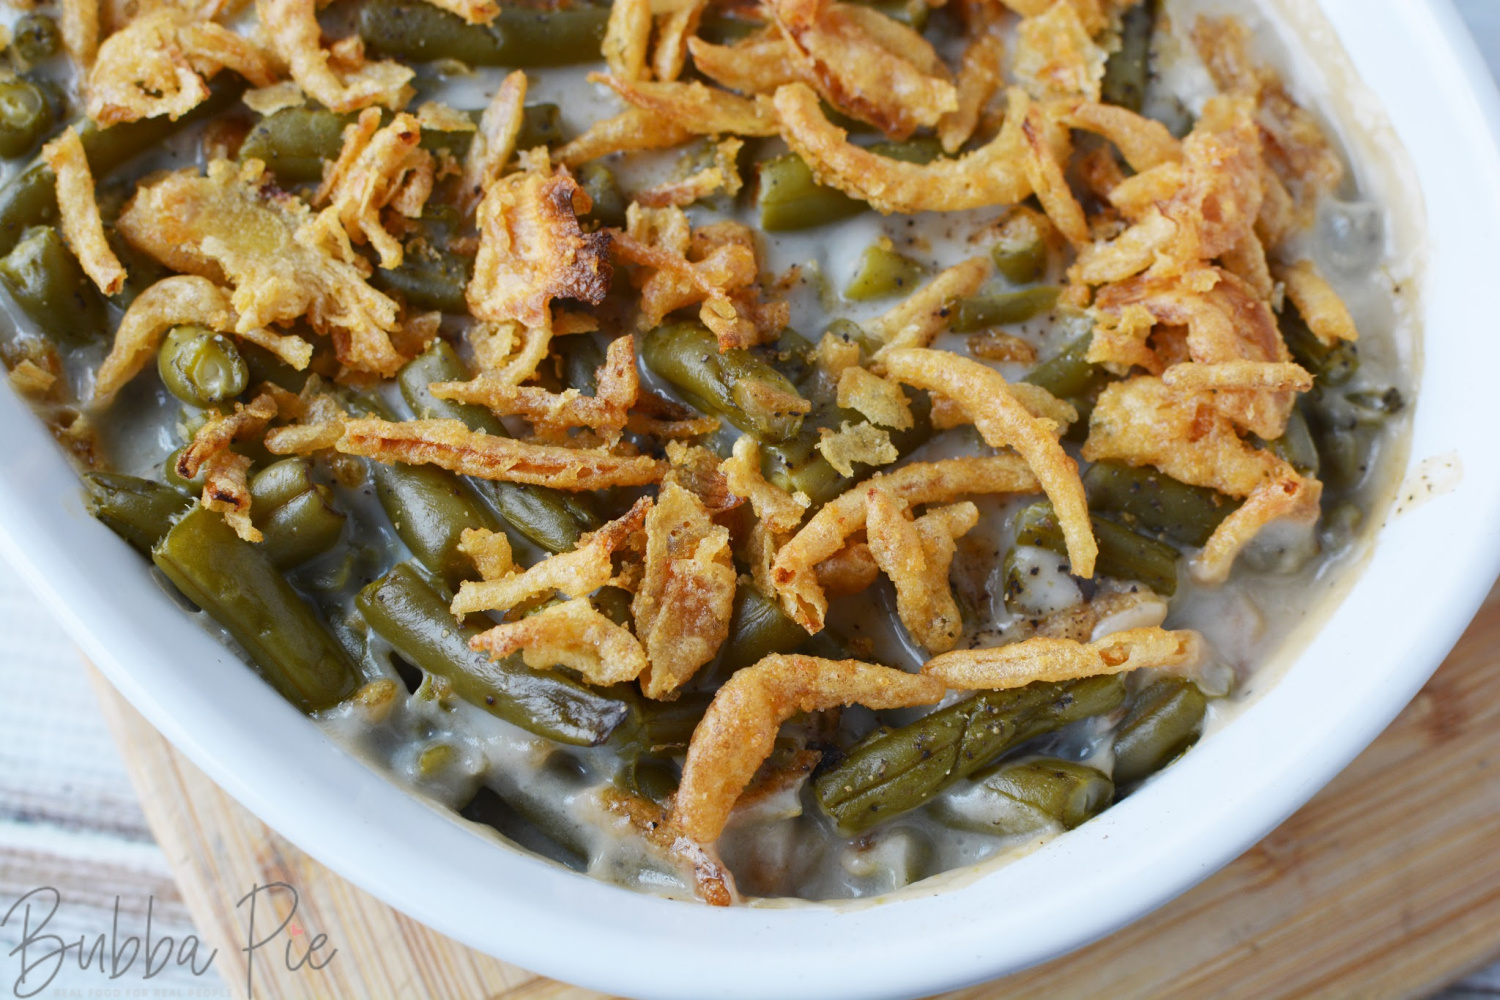 Campbell's Green Bean Casserole makes a great side dish for any occasion